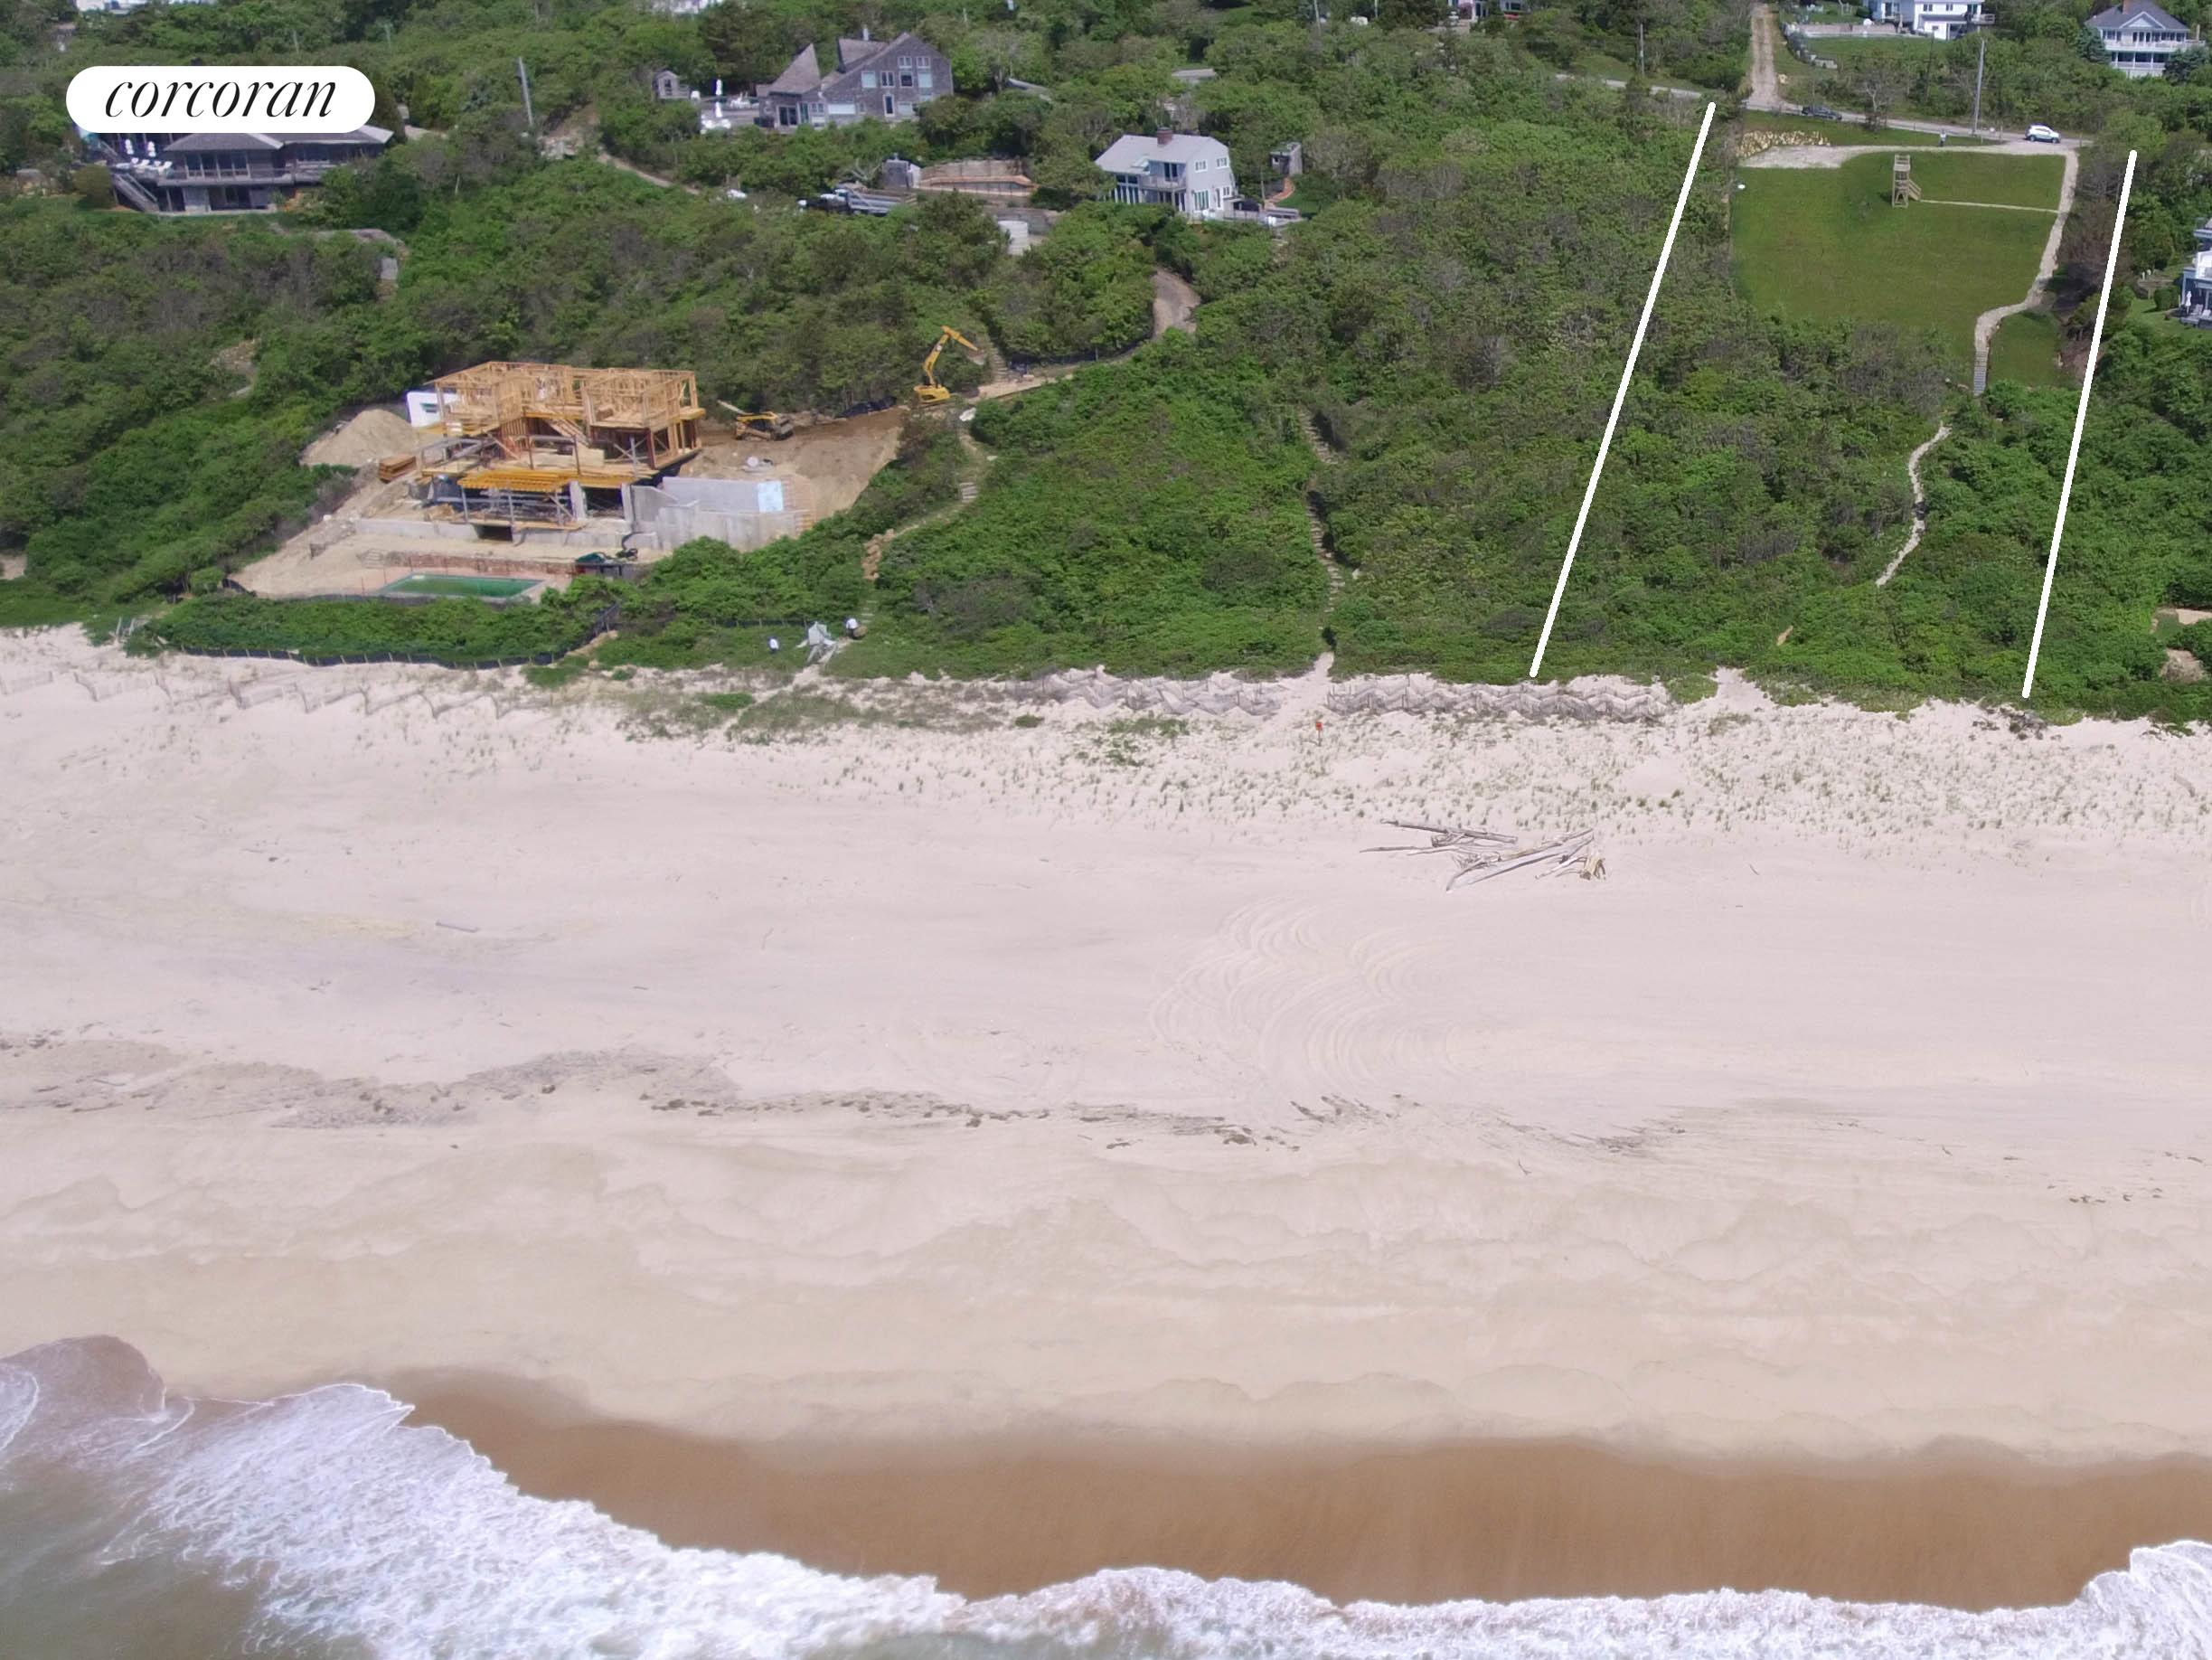 260 Old Montauk Hwy, aerial view looking South